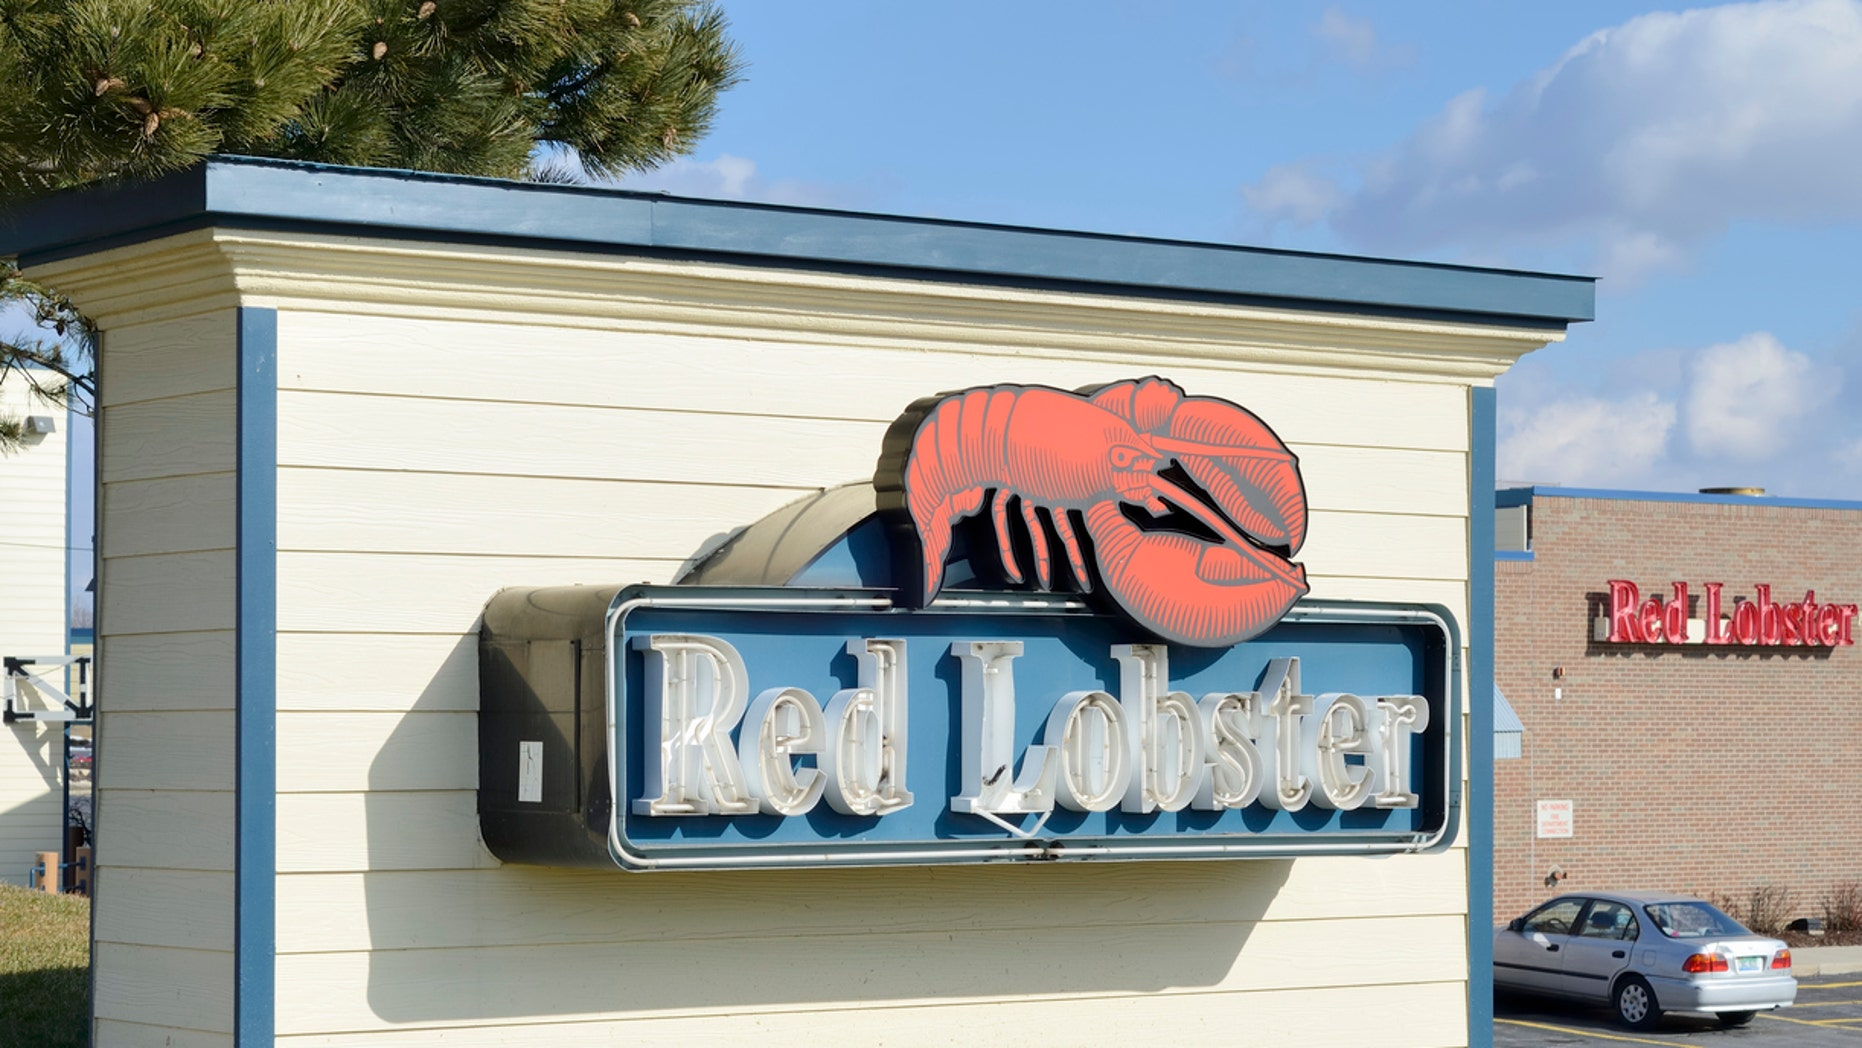 An elderly woman is suing Red Lobster over her hip replacement.